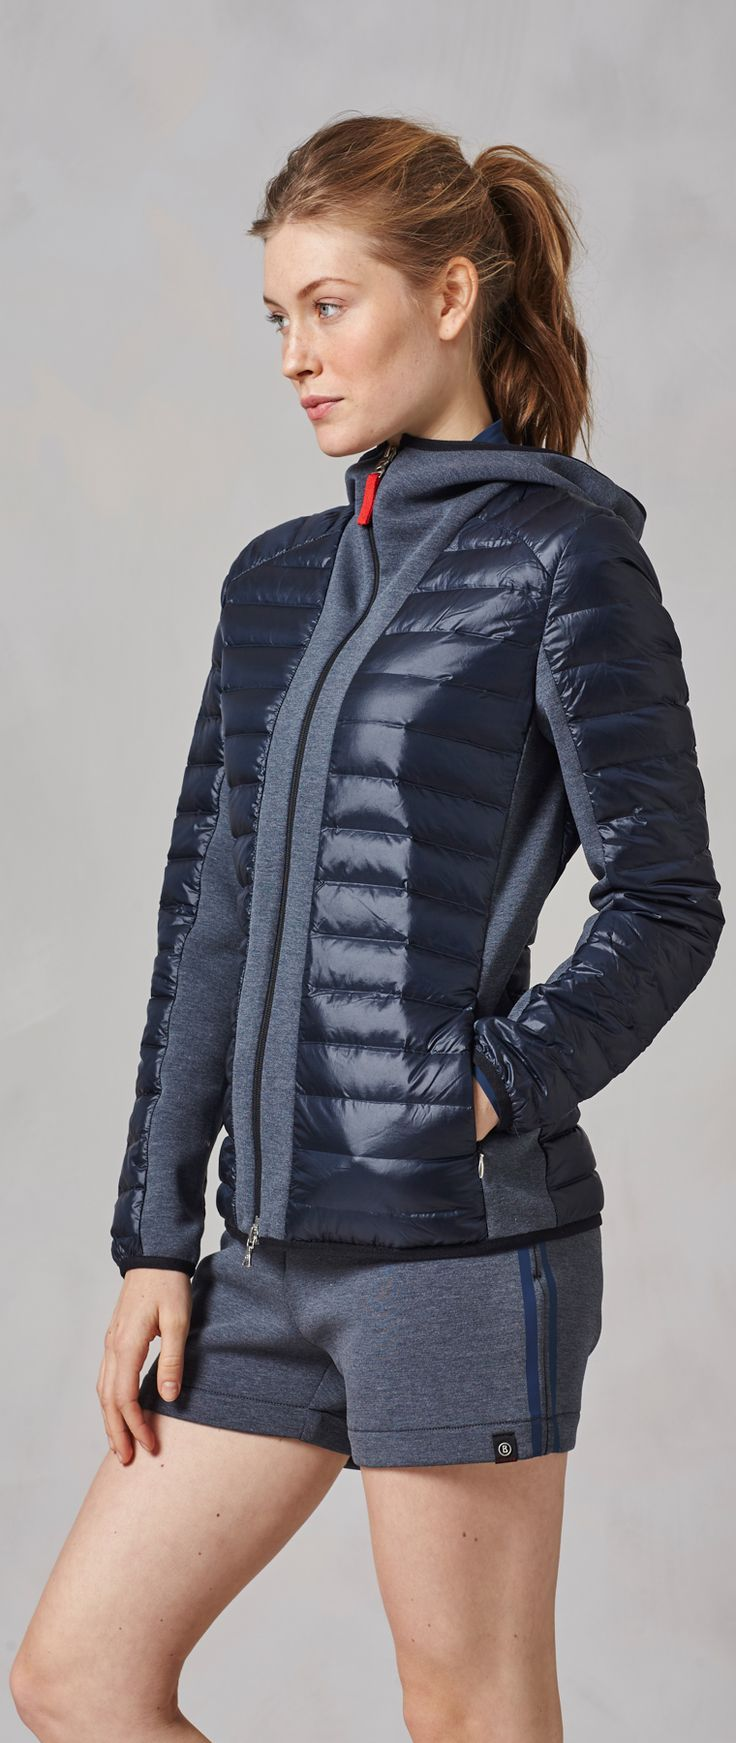 Some people just don't like the feeling of pure nylon from a down jacket on their skin, so this women's light down jacket from Bogner Fire + Ice features softer cotton materials in the spots that matter the most. It's lightweight for the warmer months, and is the perfect cross between a true jacket and your favorite hoodie.